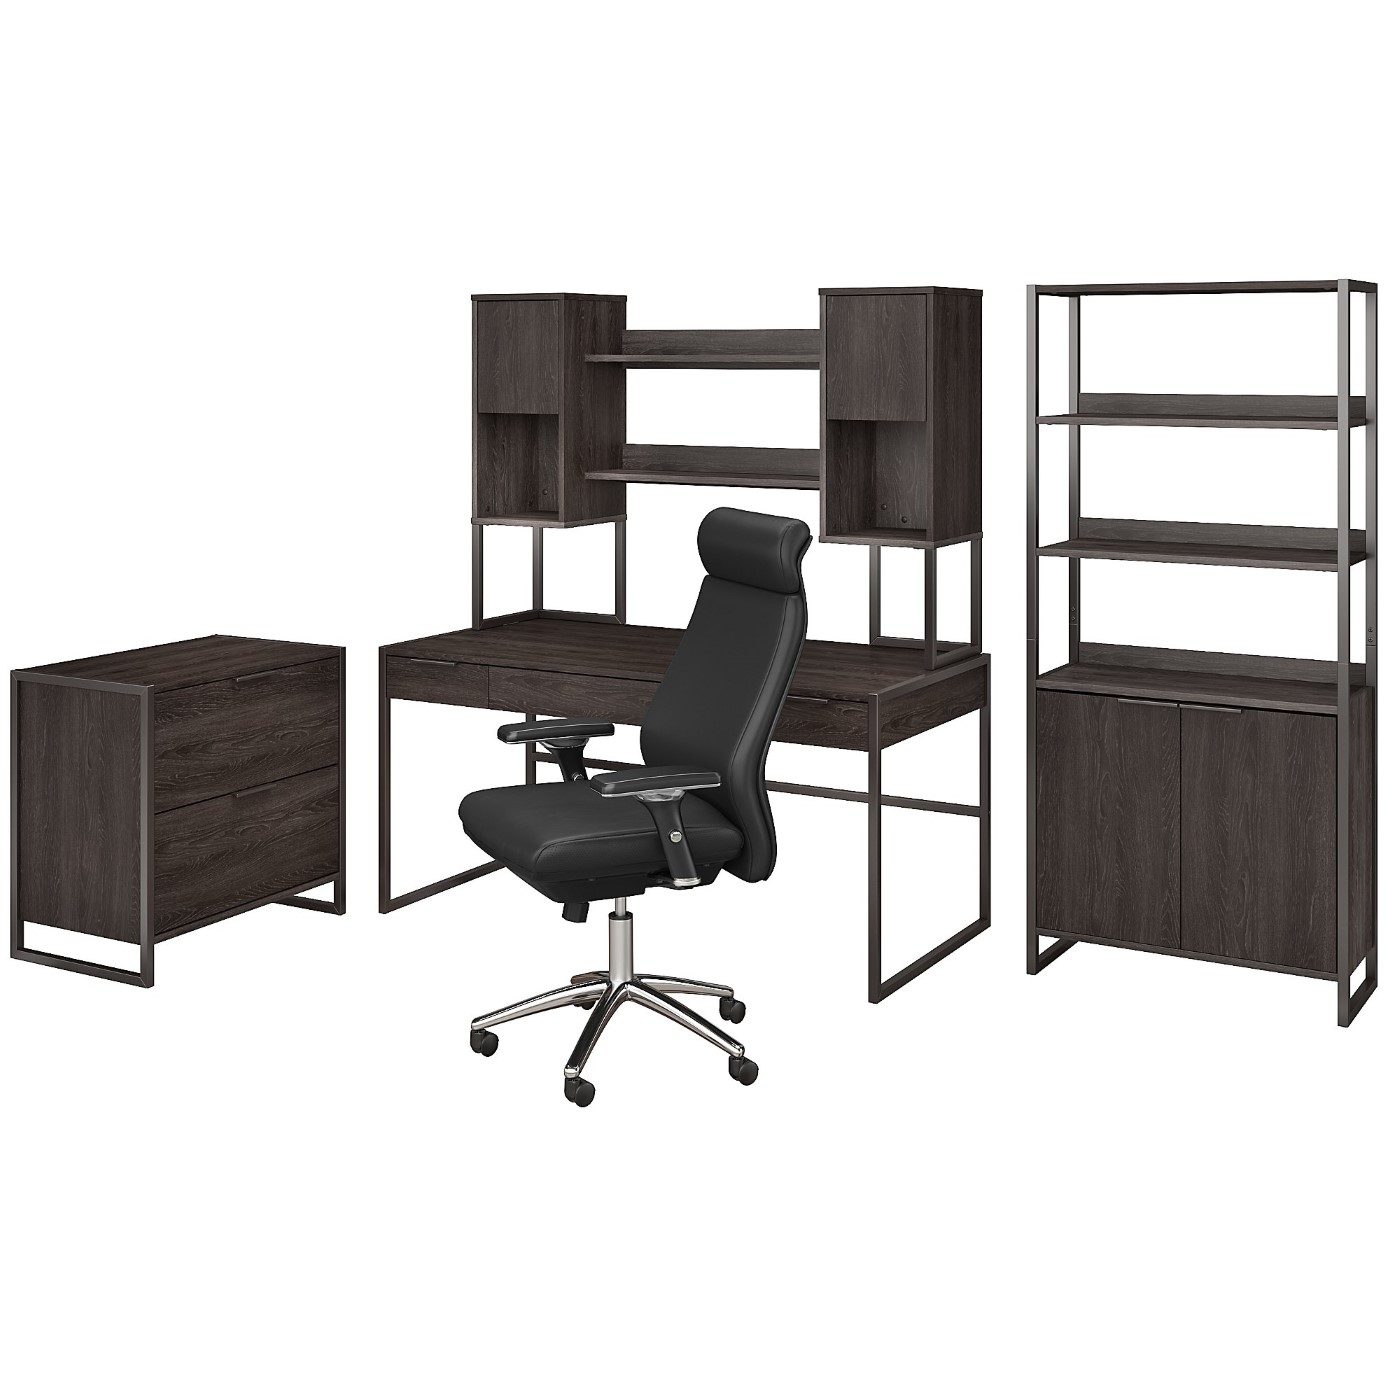 The kathy ireland� Atria 60W Desk with Hutch, File Cabinet, Bookcase and High Back Office Chair is Sustainable Eco Friendly Furniture. Free Shipping!